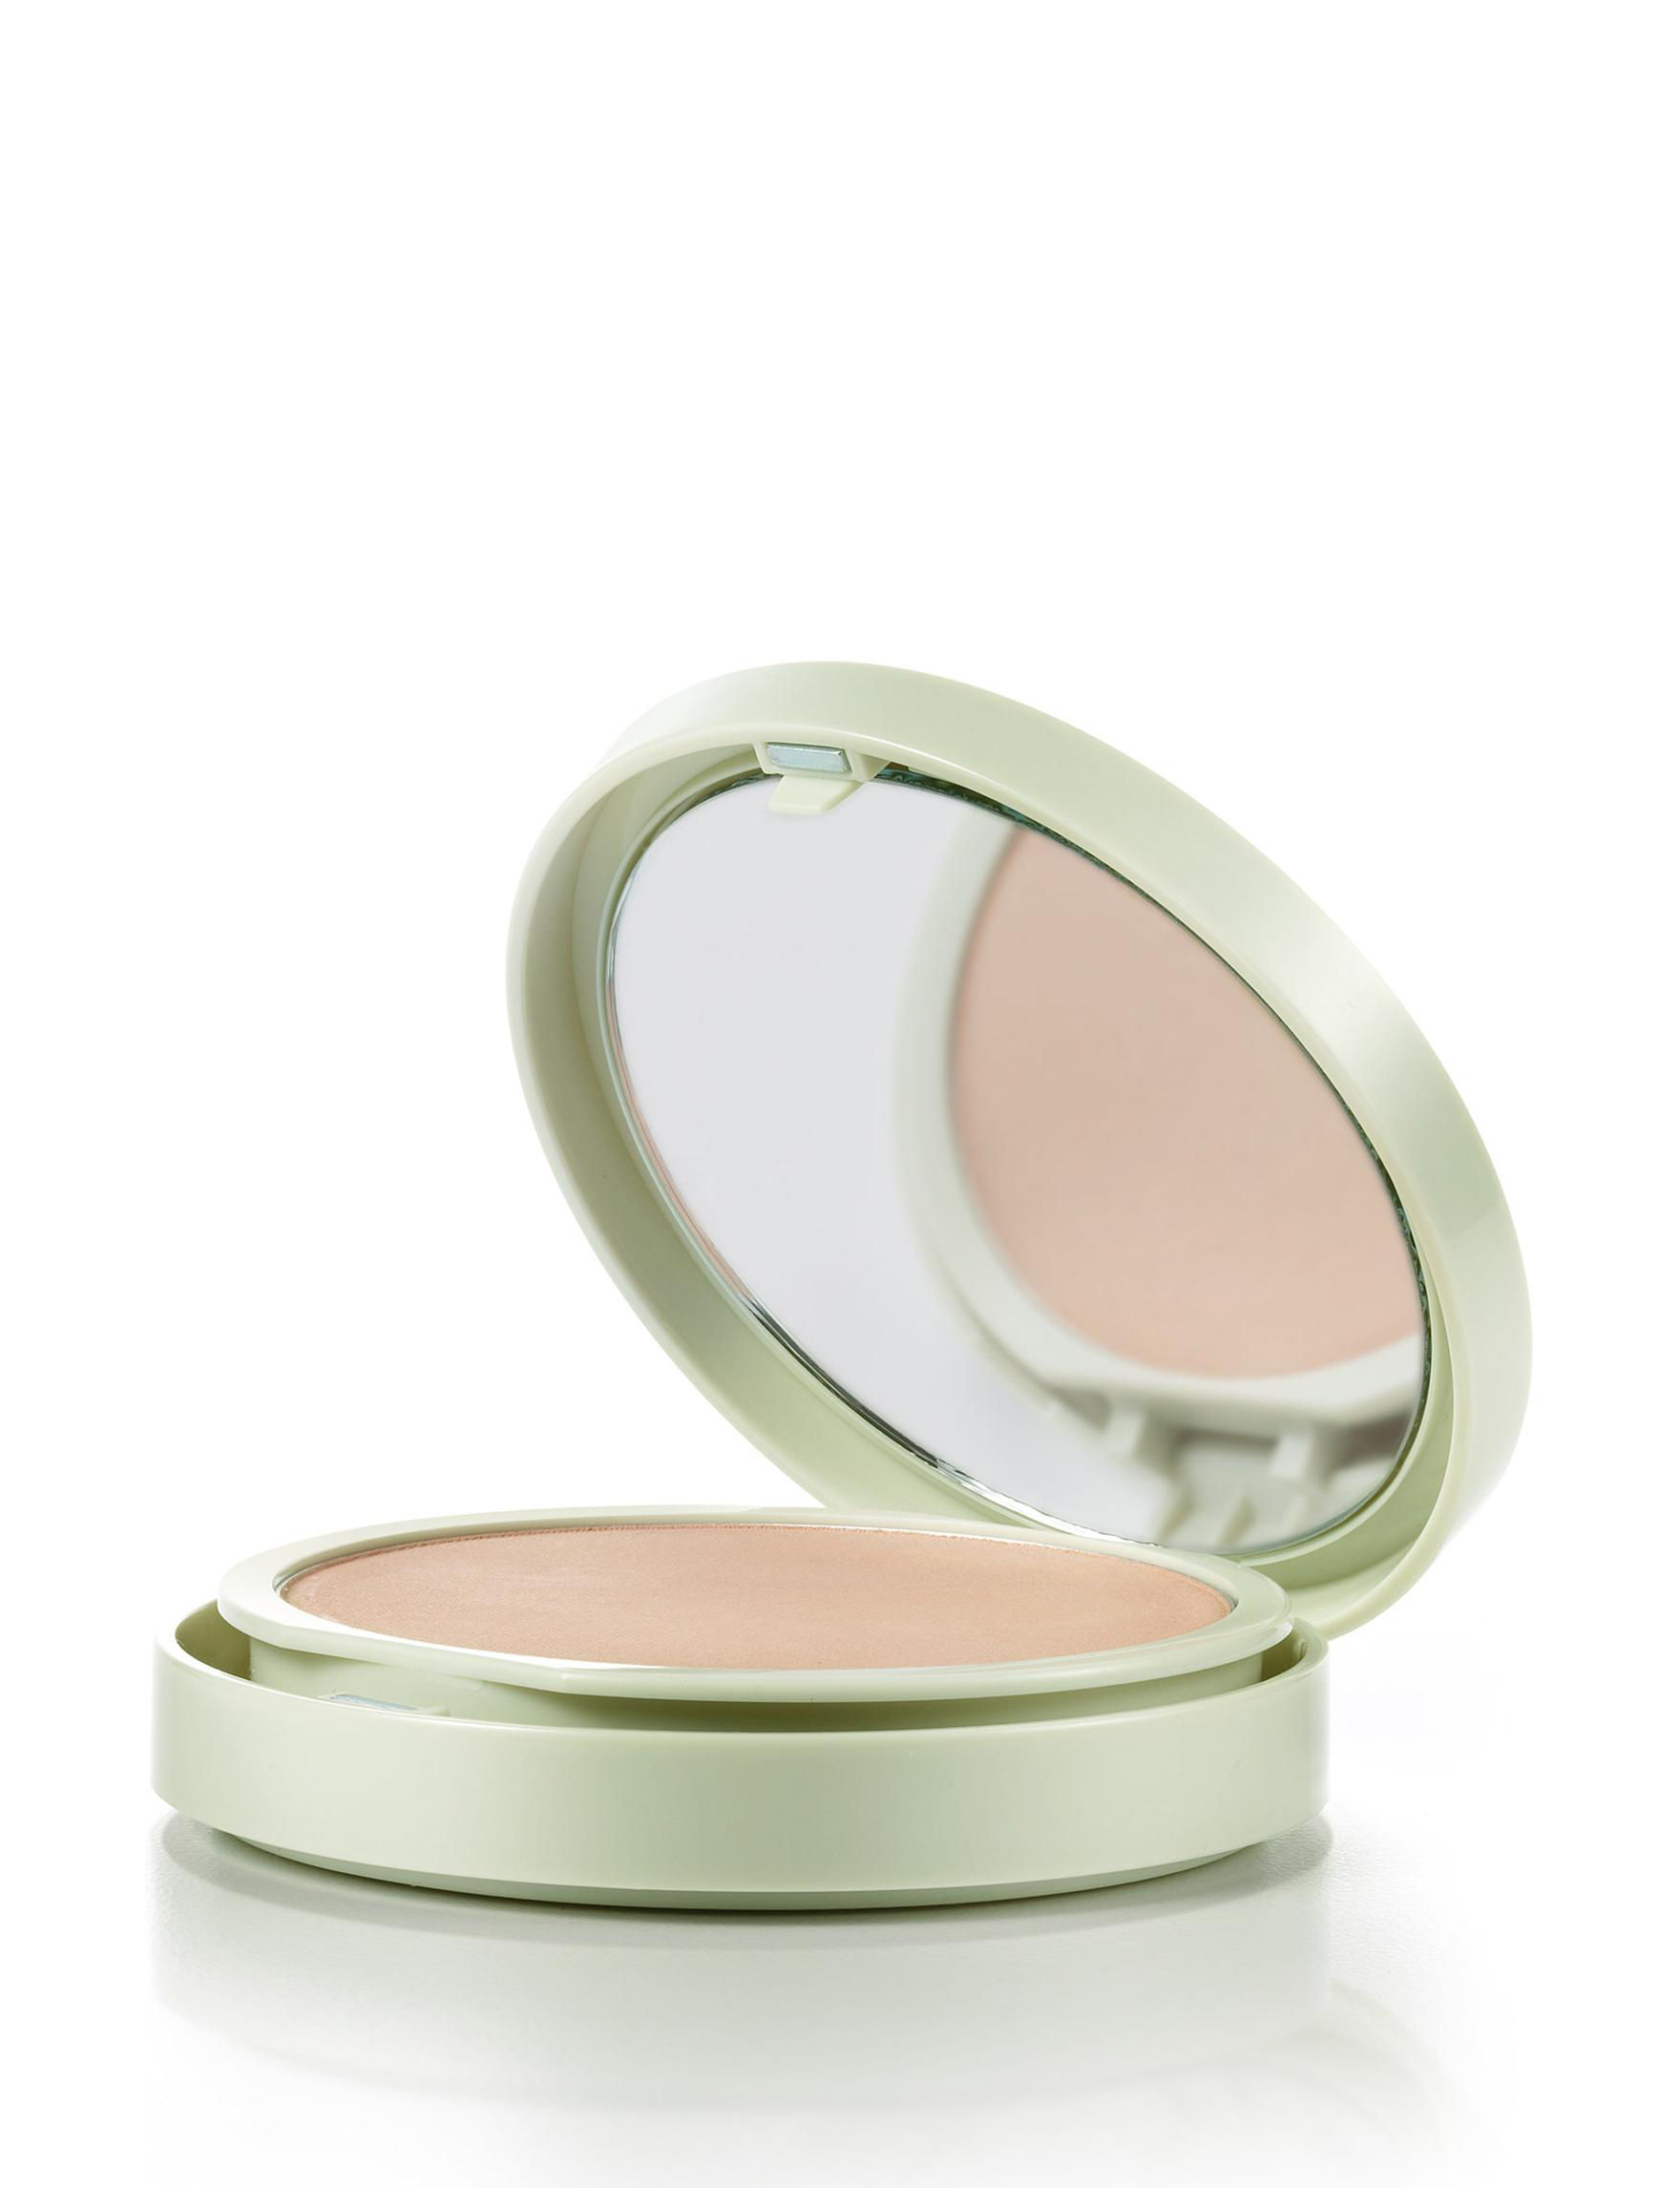 Origins Medium- Neutral Face Foundation